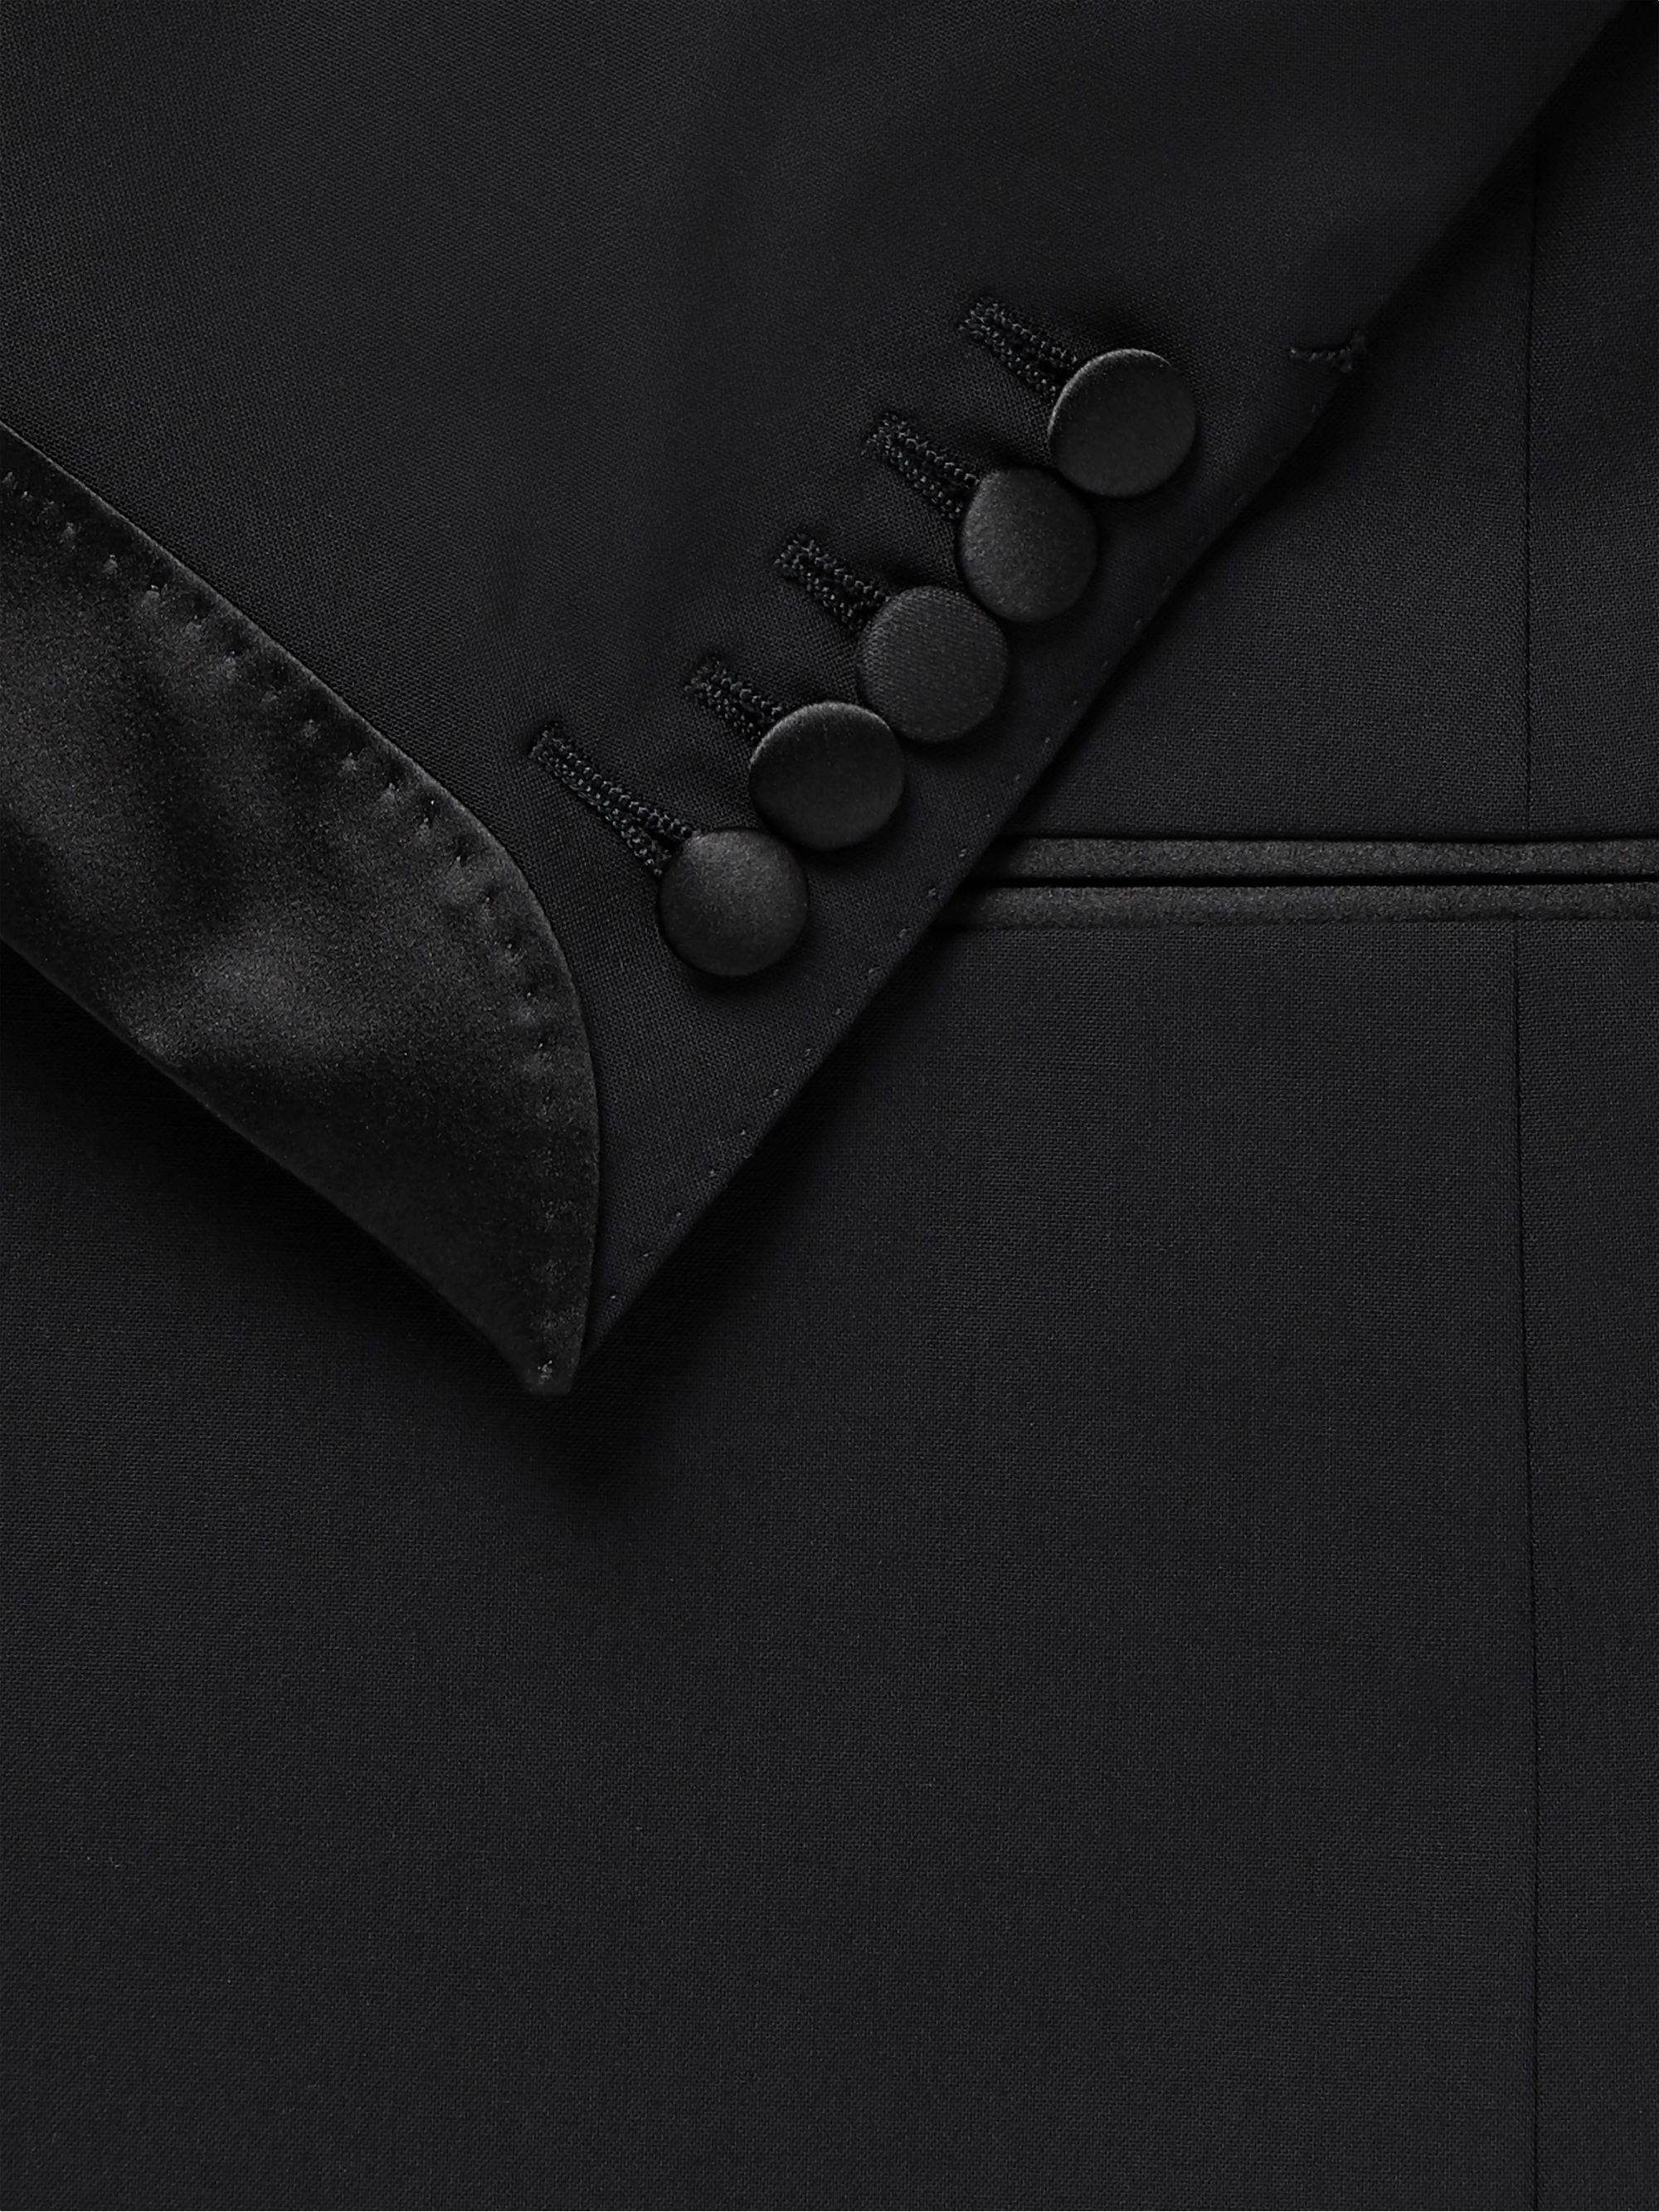 TOM FORD Slim-Fit Satin-Trimmed Stretch-Wool Tuxedo Jacket